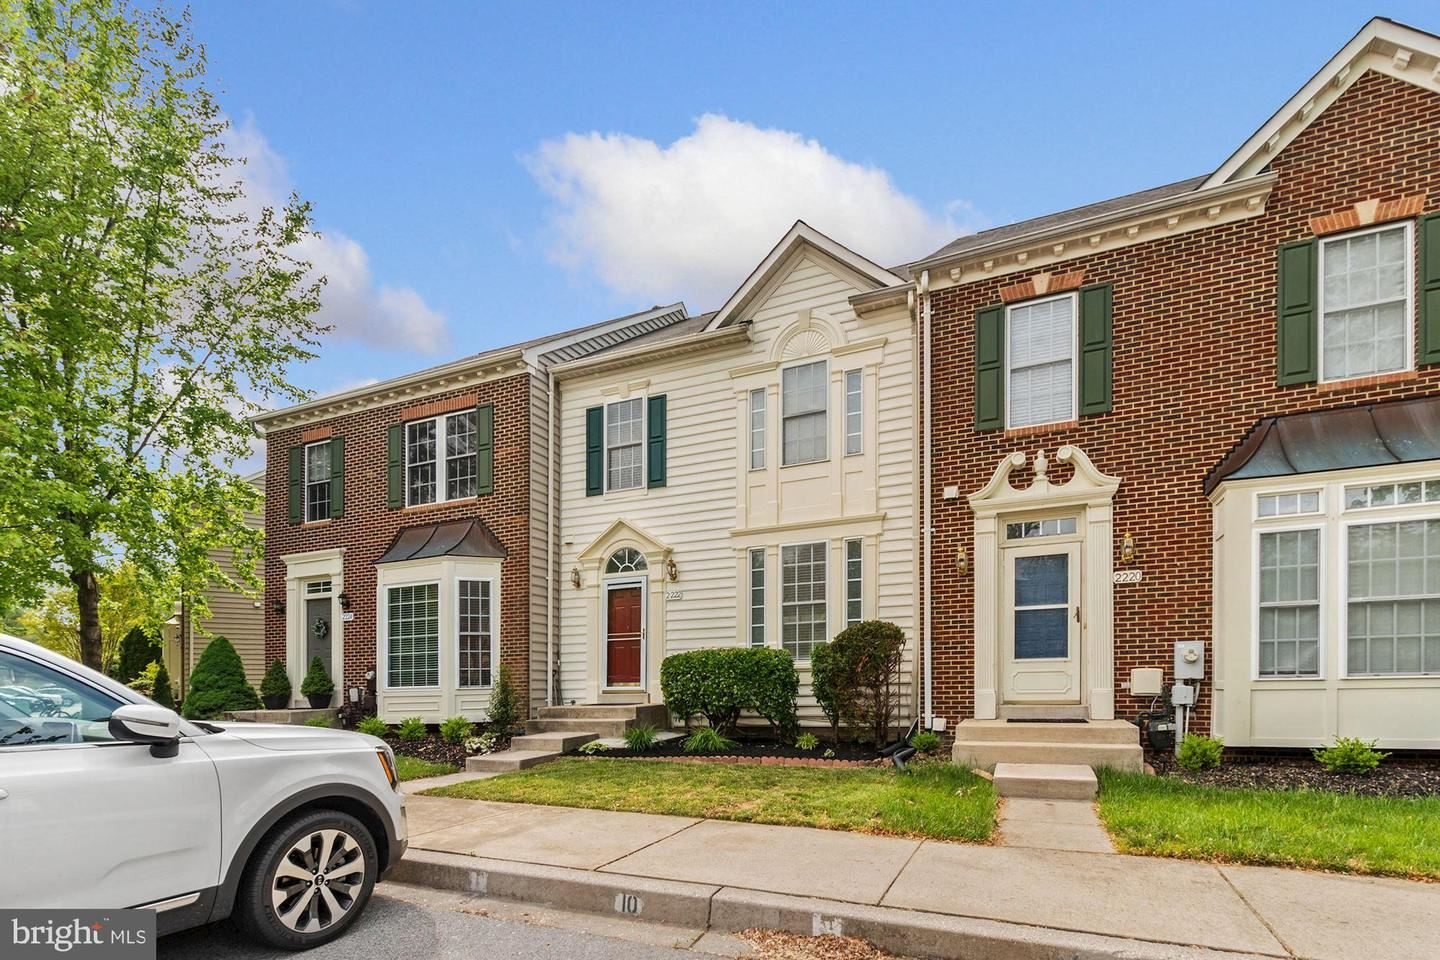 2222 BROMLEY CT, Woodstock, MD 21163 - MLS#: MDHW293696